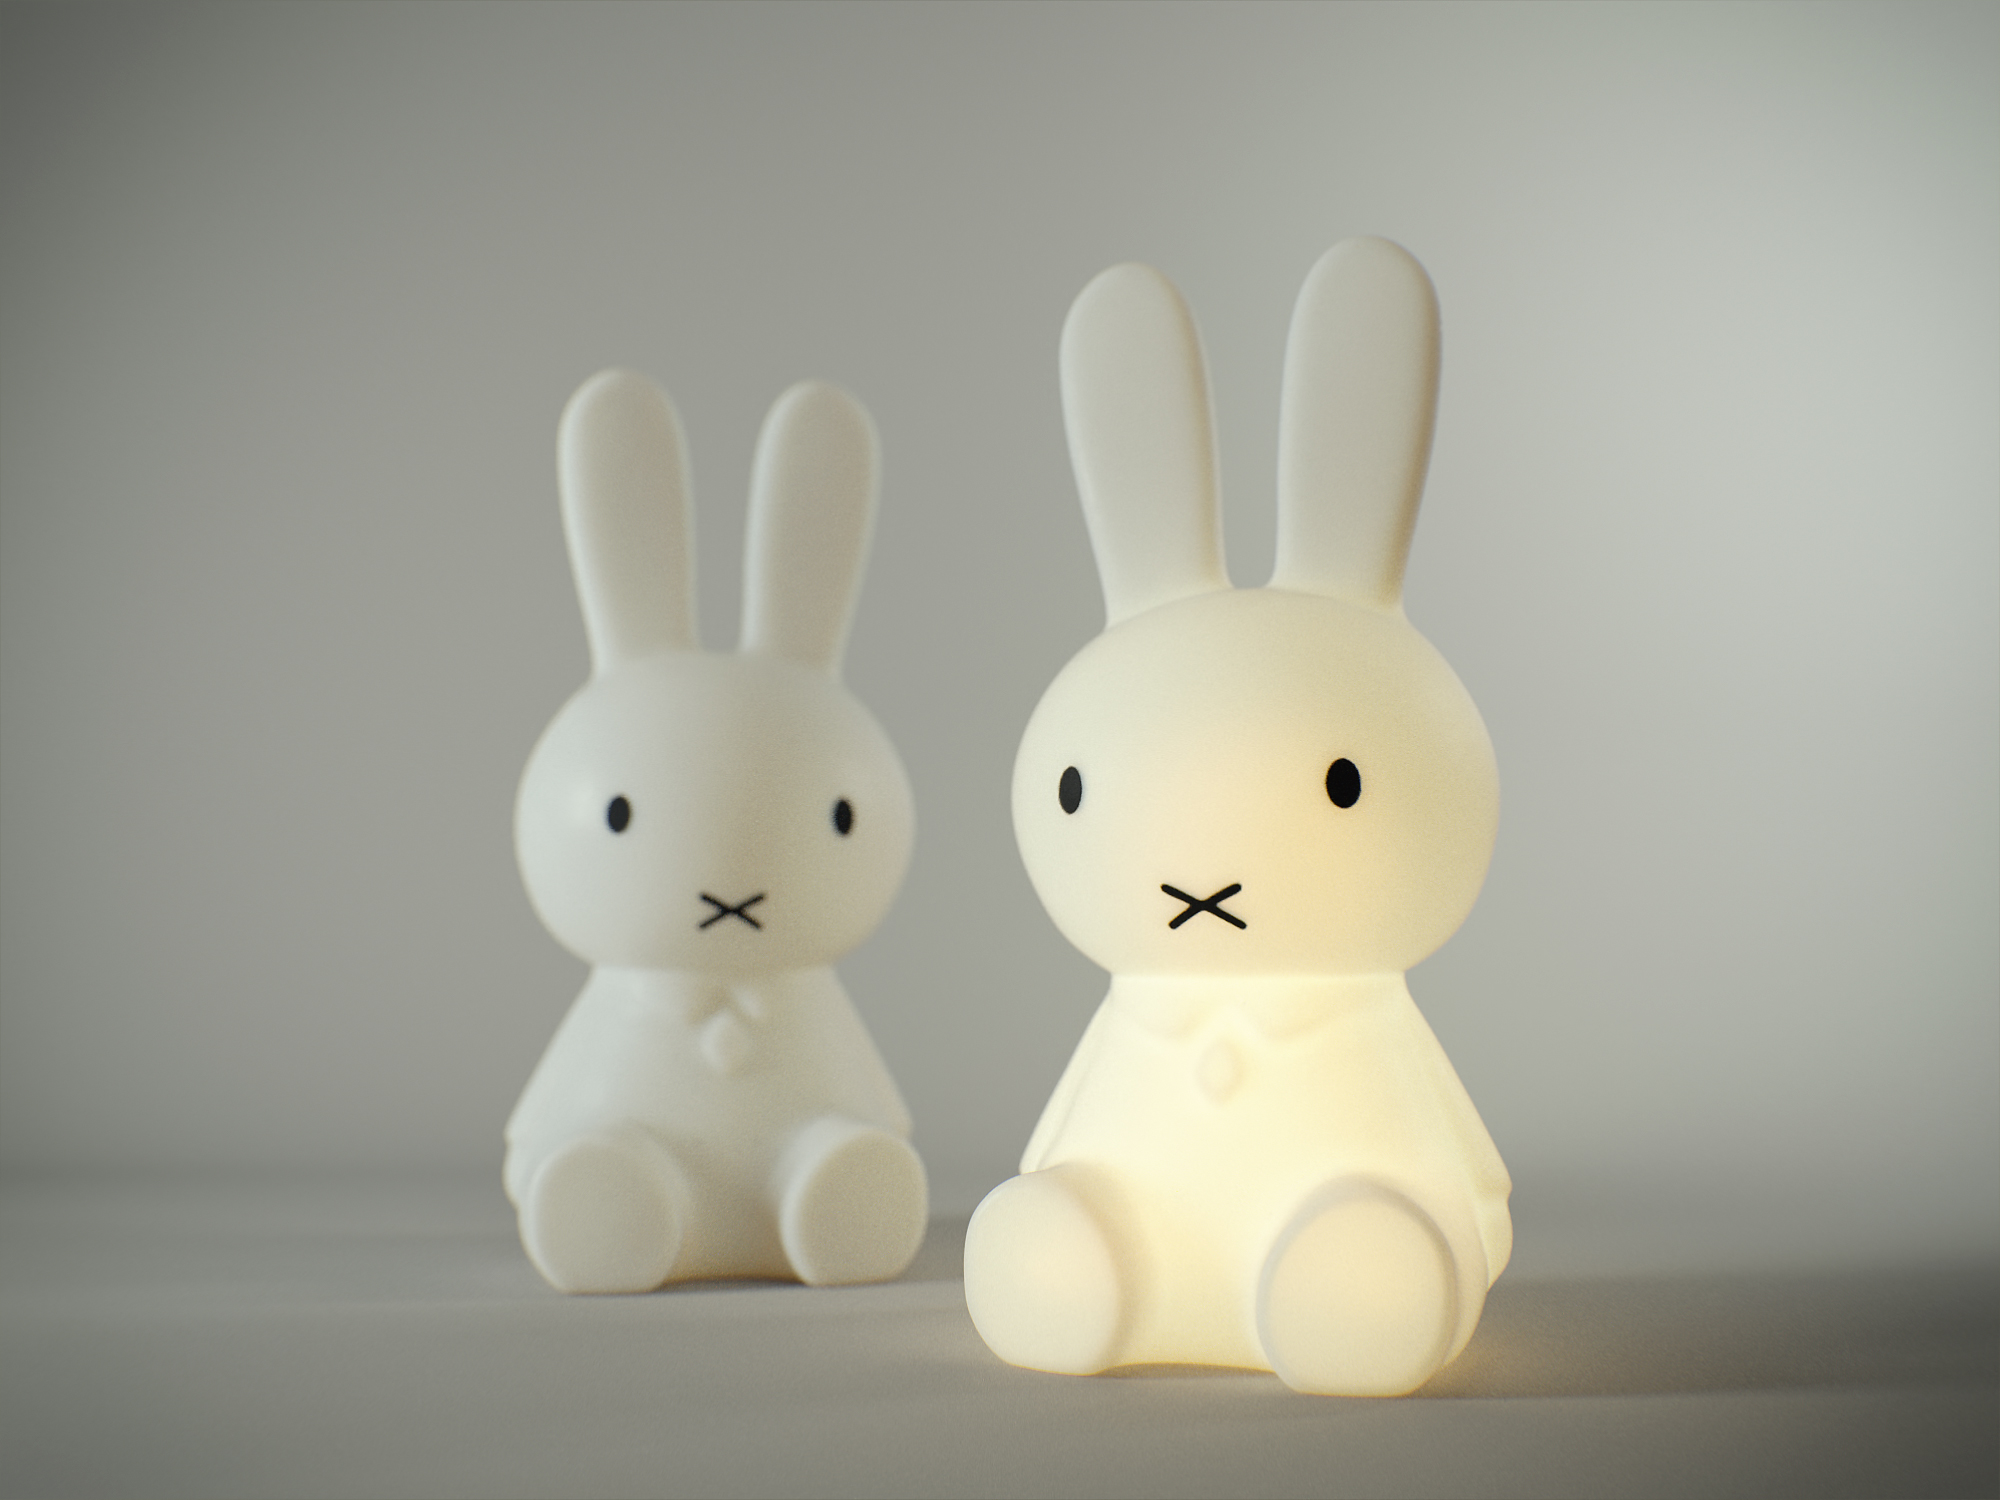 miffy-light_C4D-2